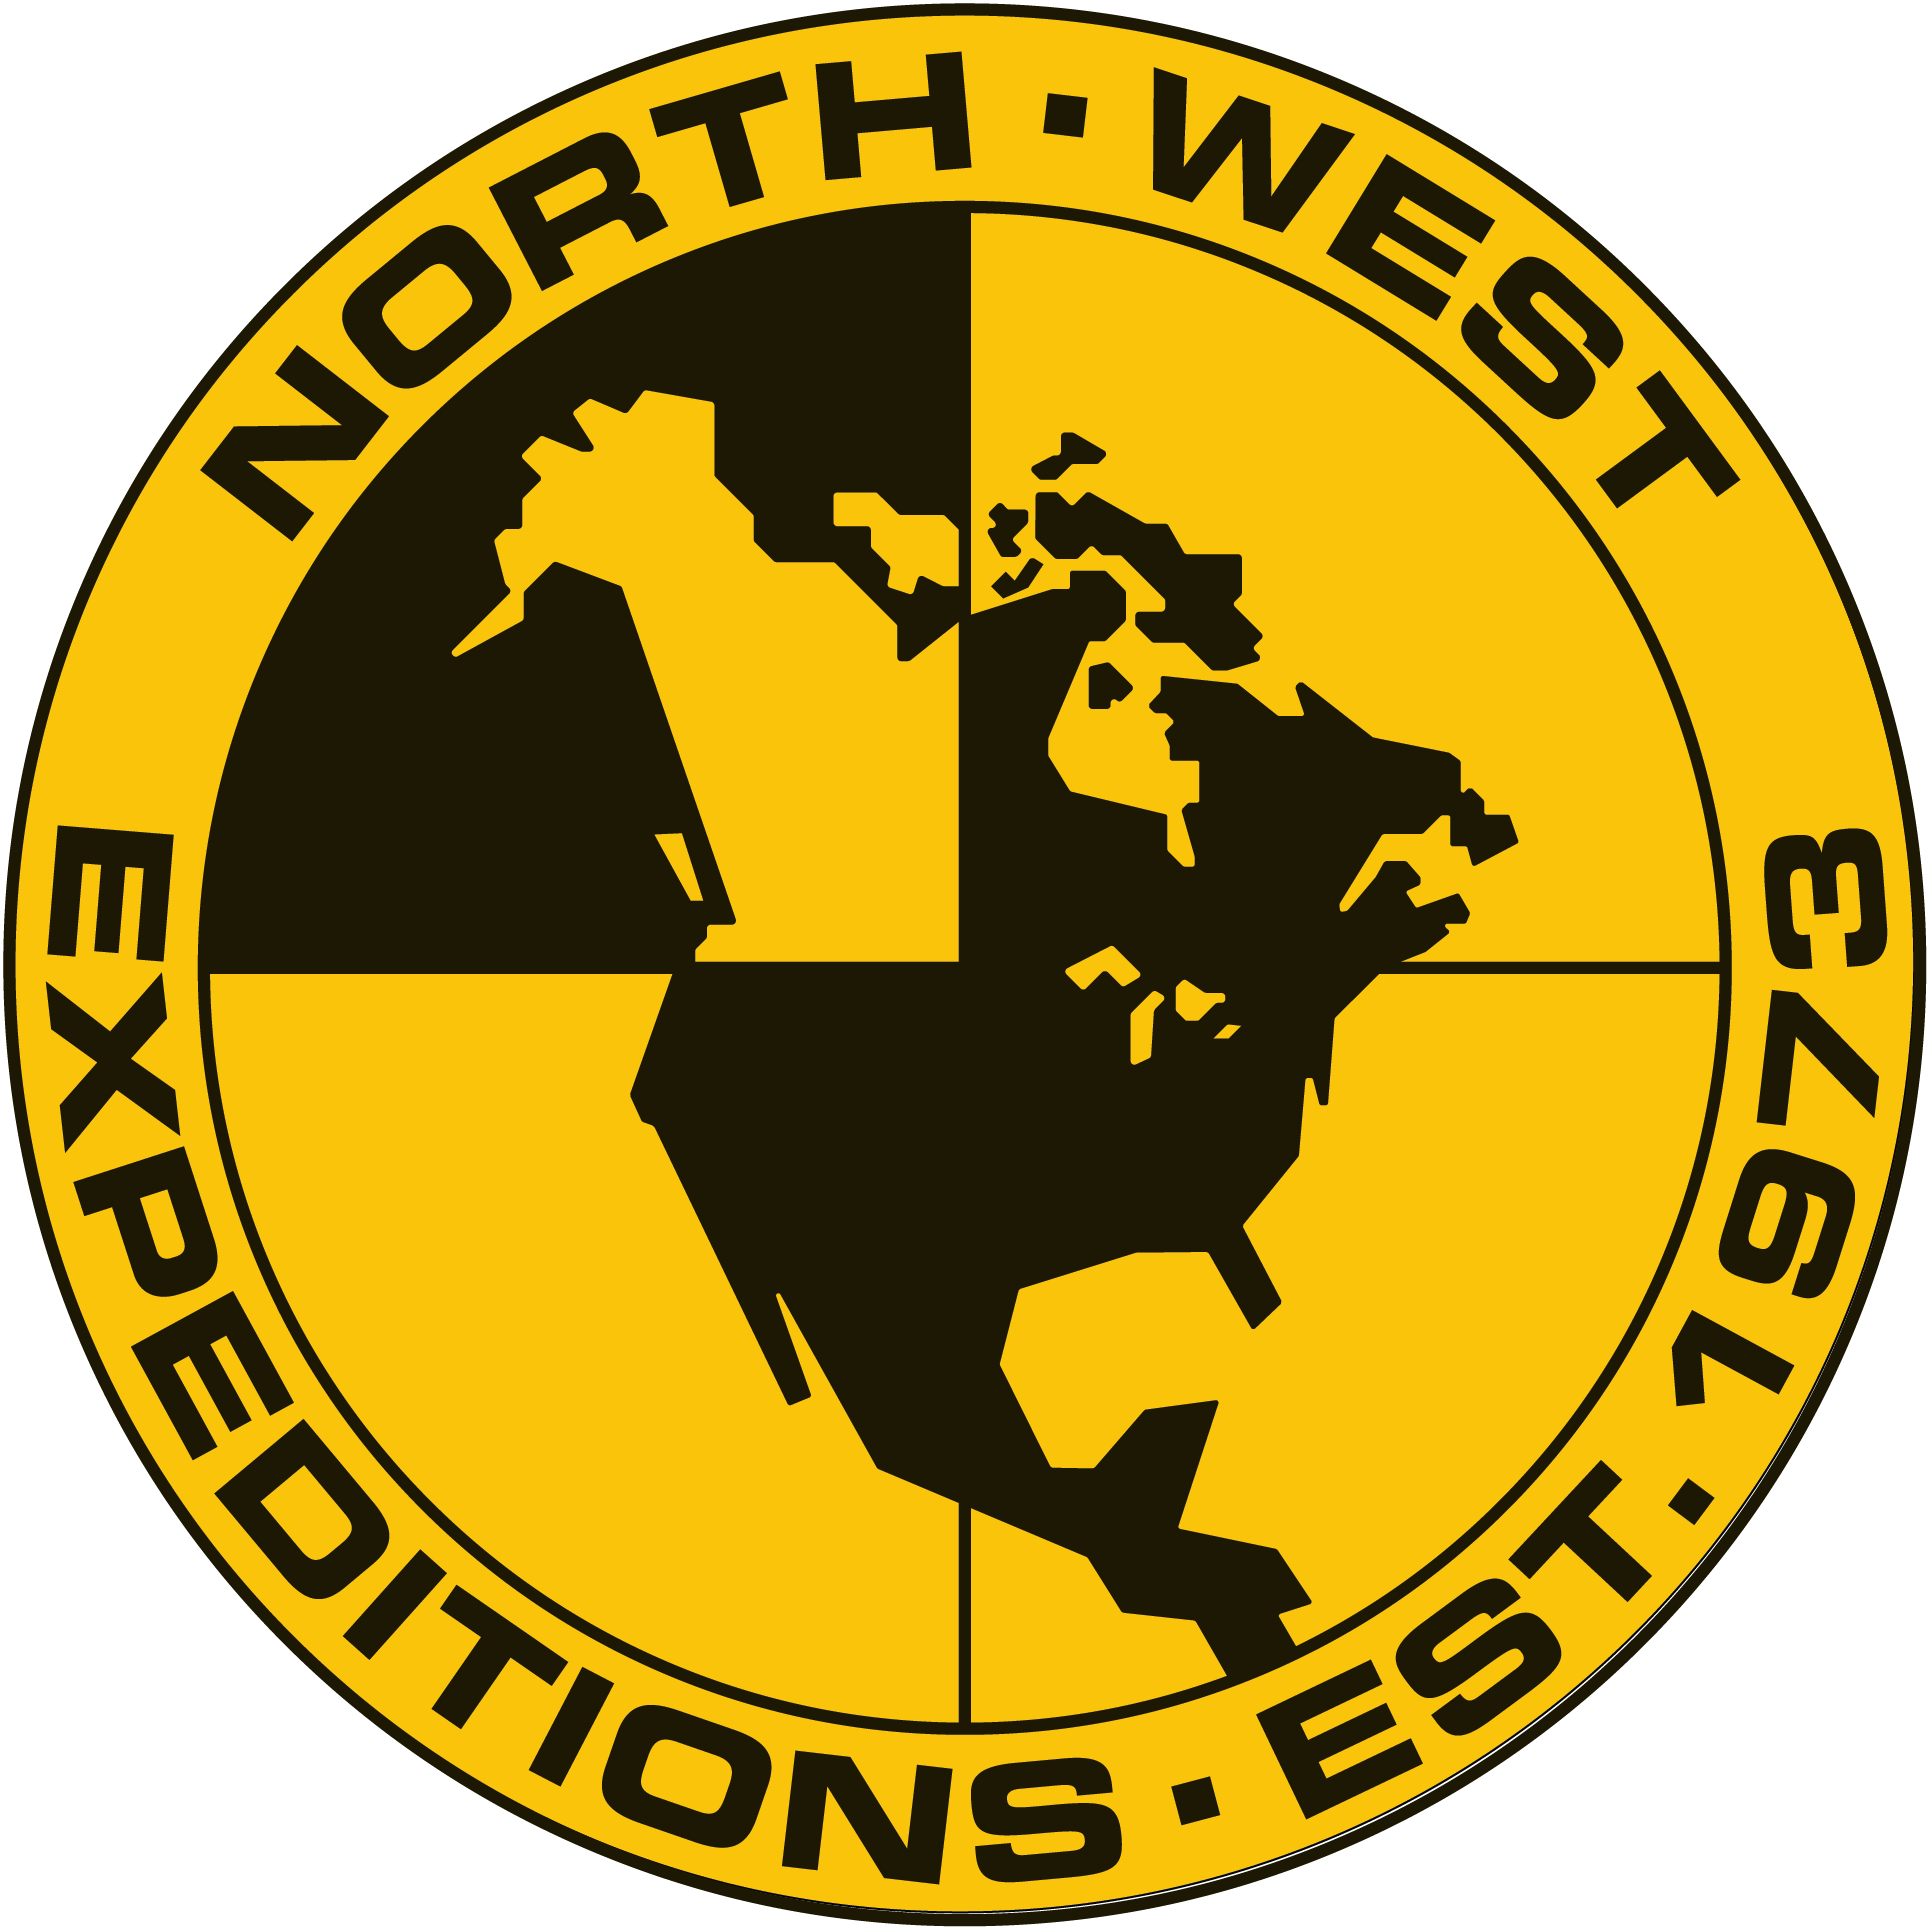 North-West Expeditions